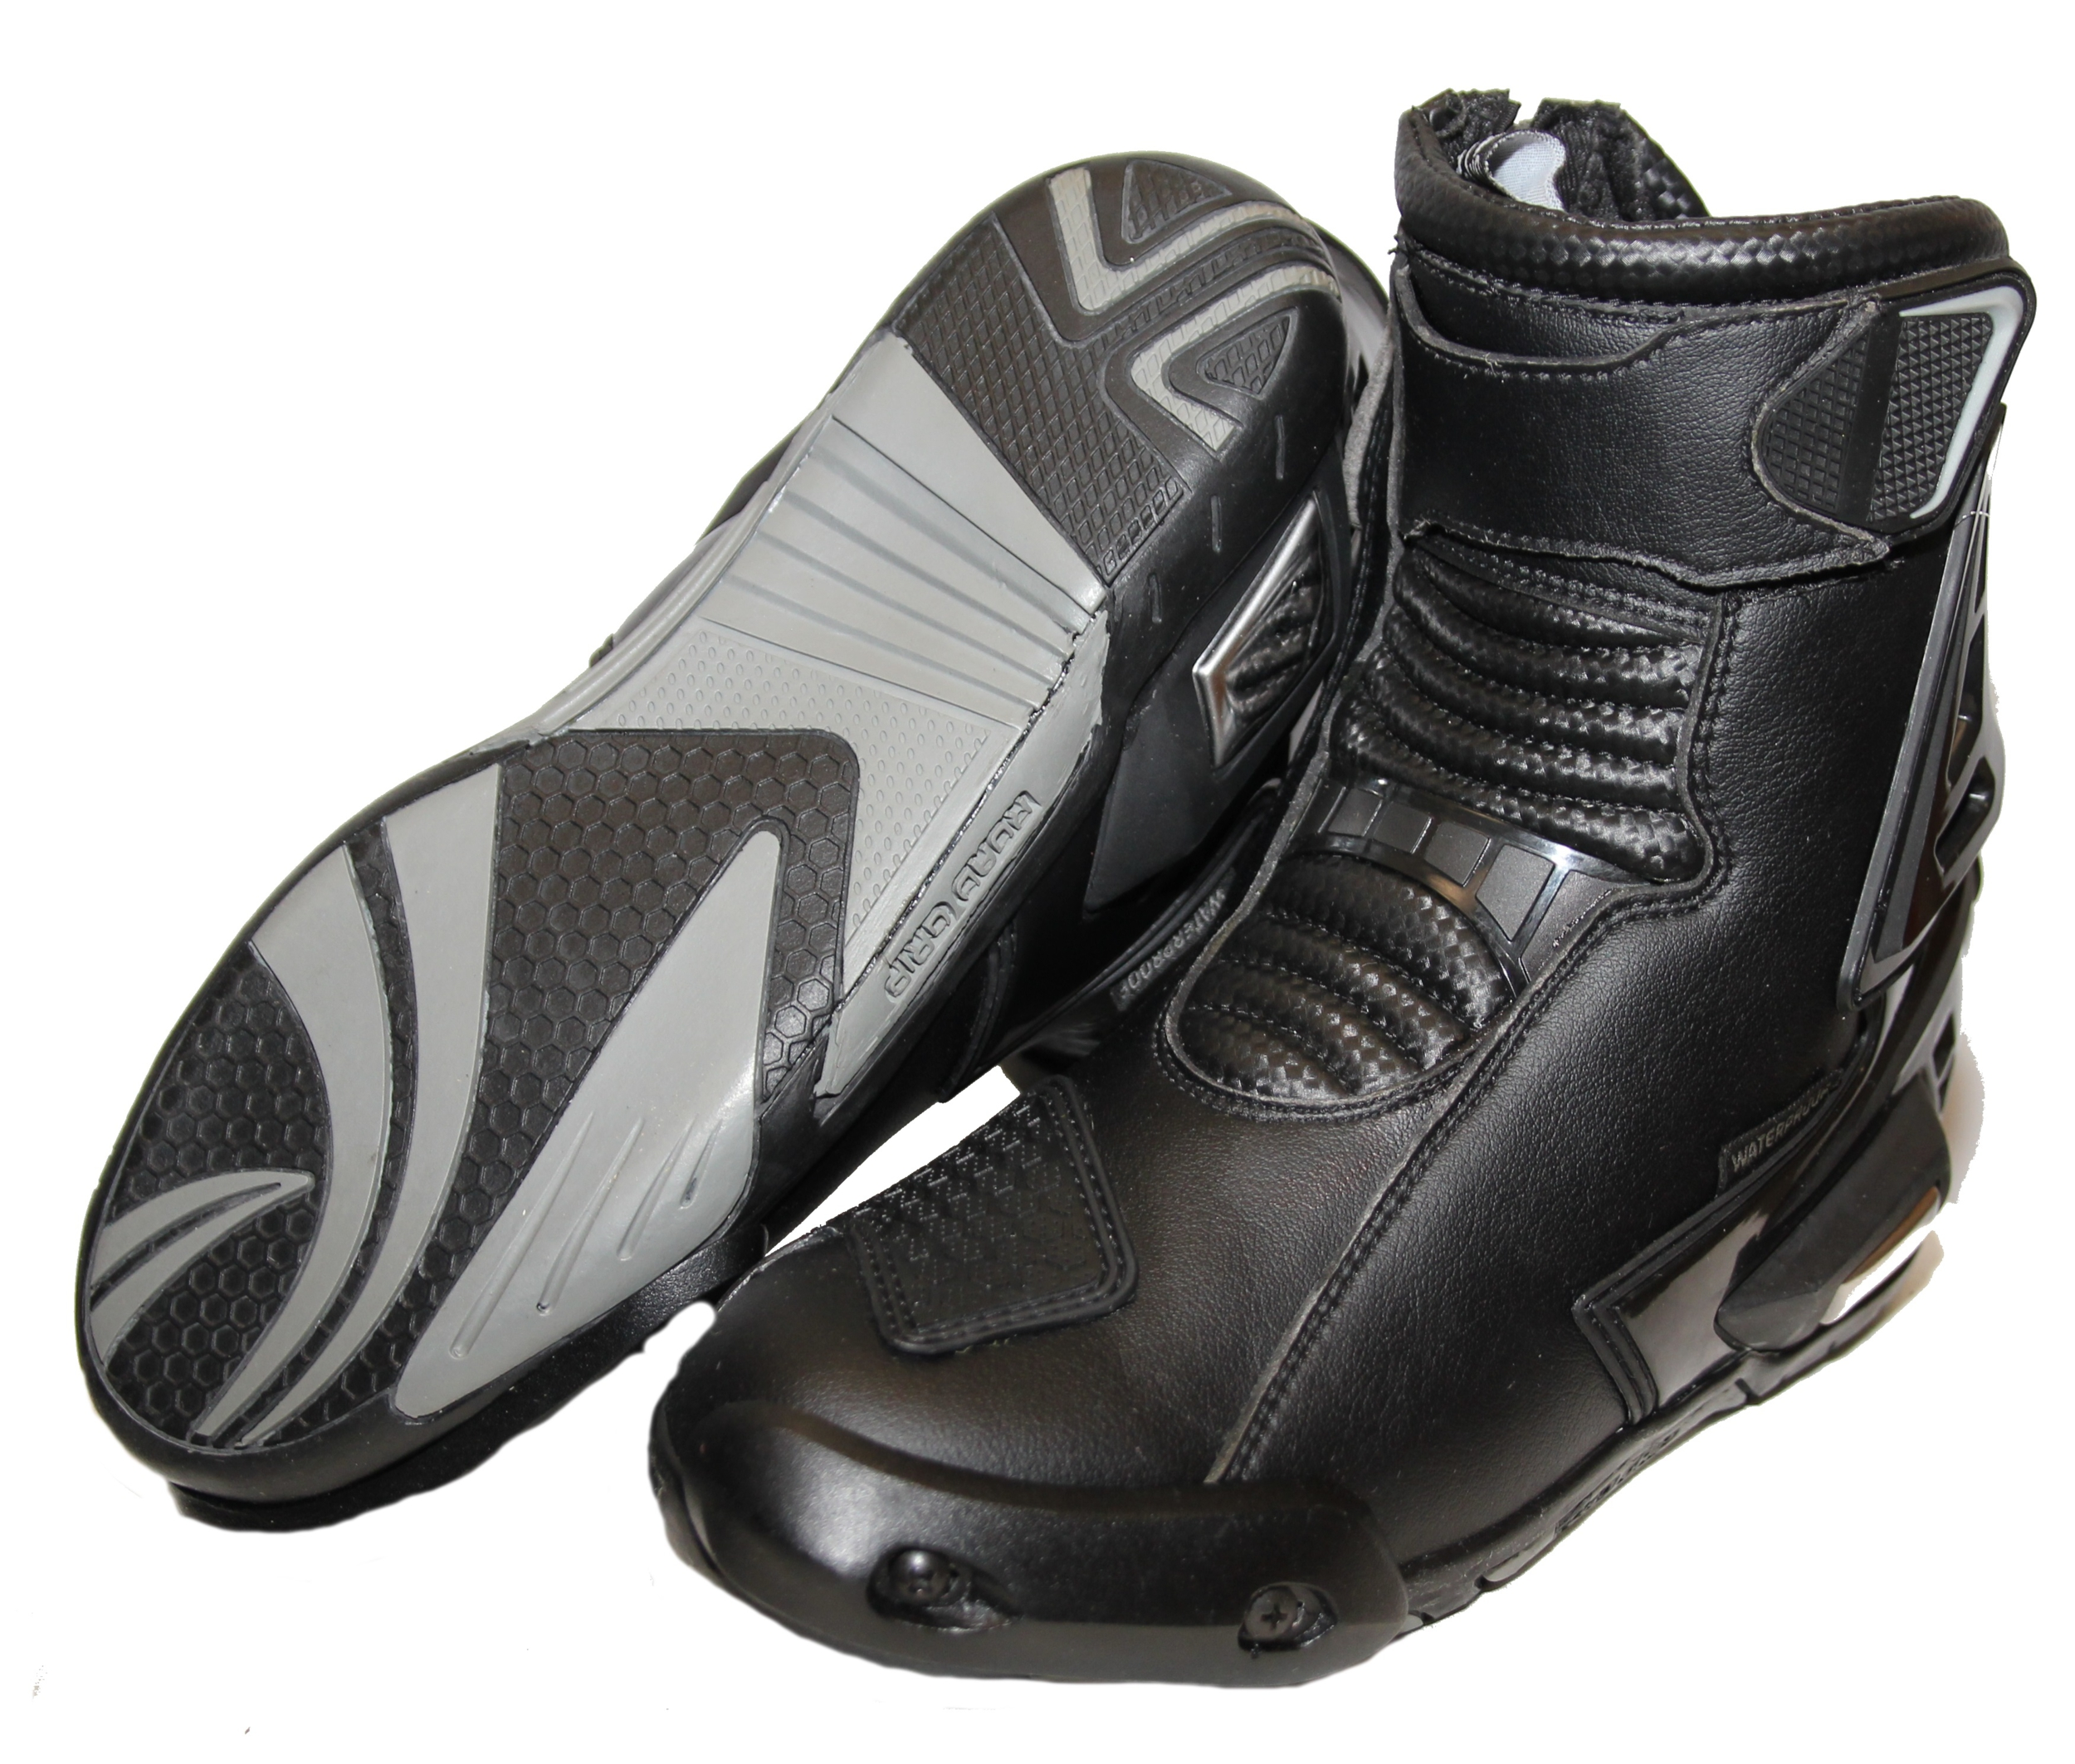 Kc603_2_Chaussures moto